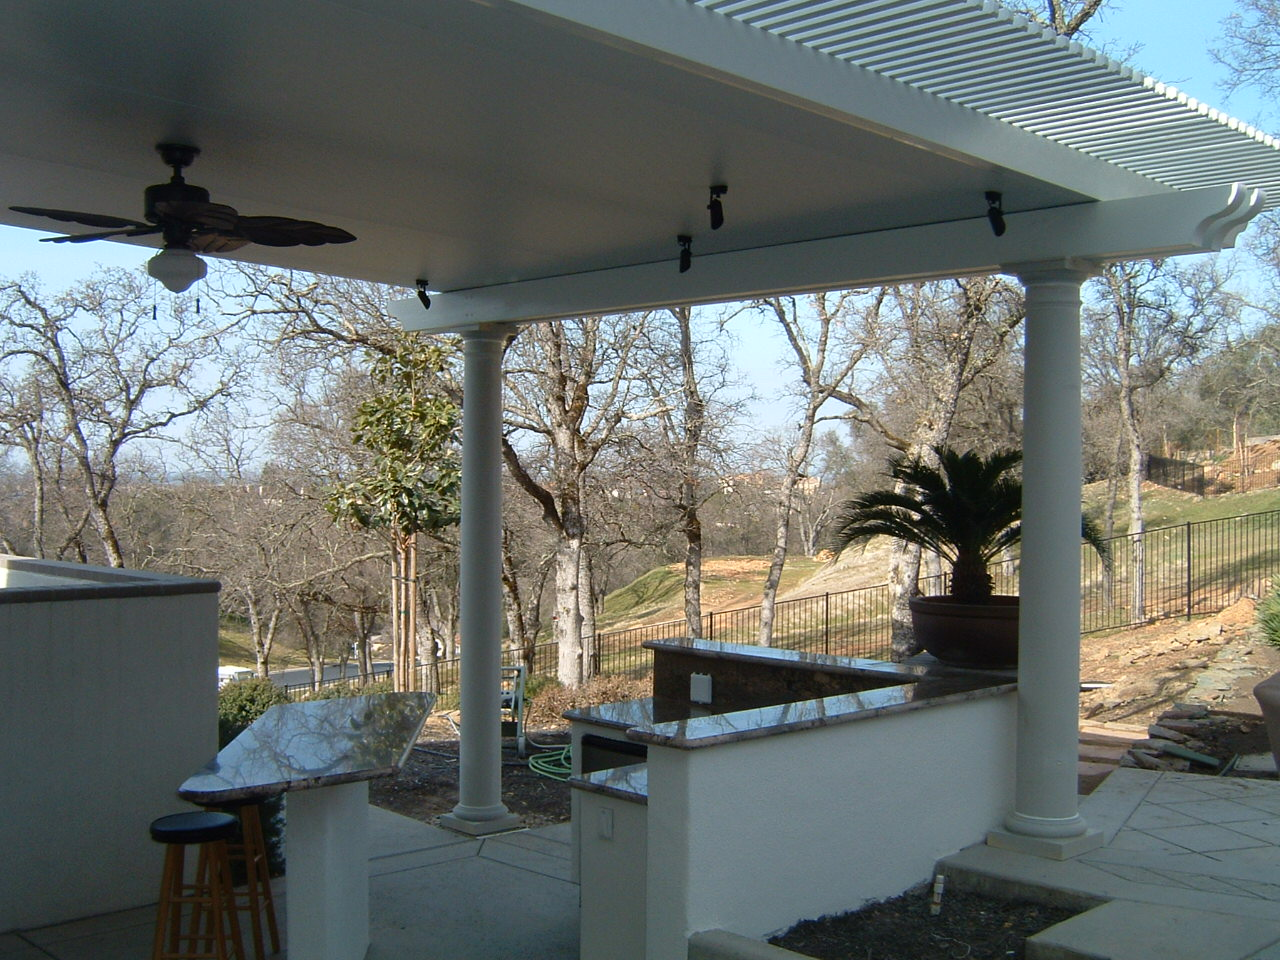 ... Low Voltage Lighting In Insulated Roof Patio Cover ...